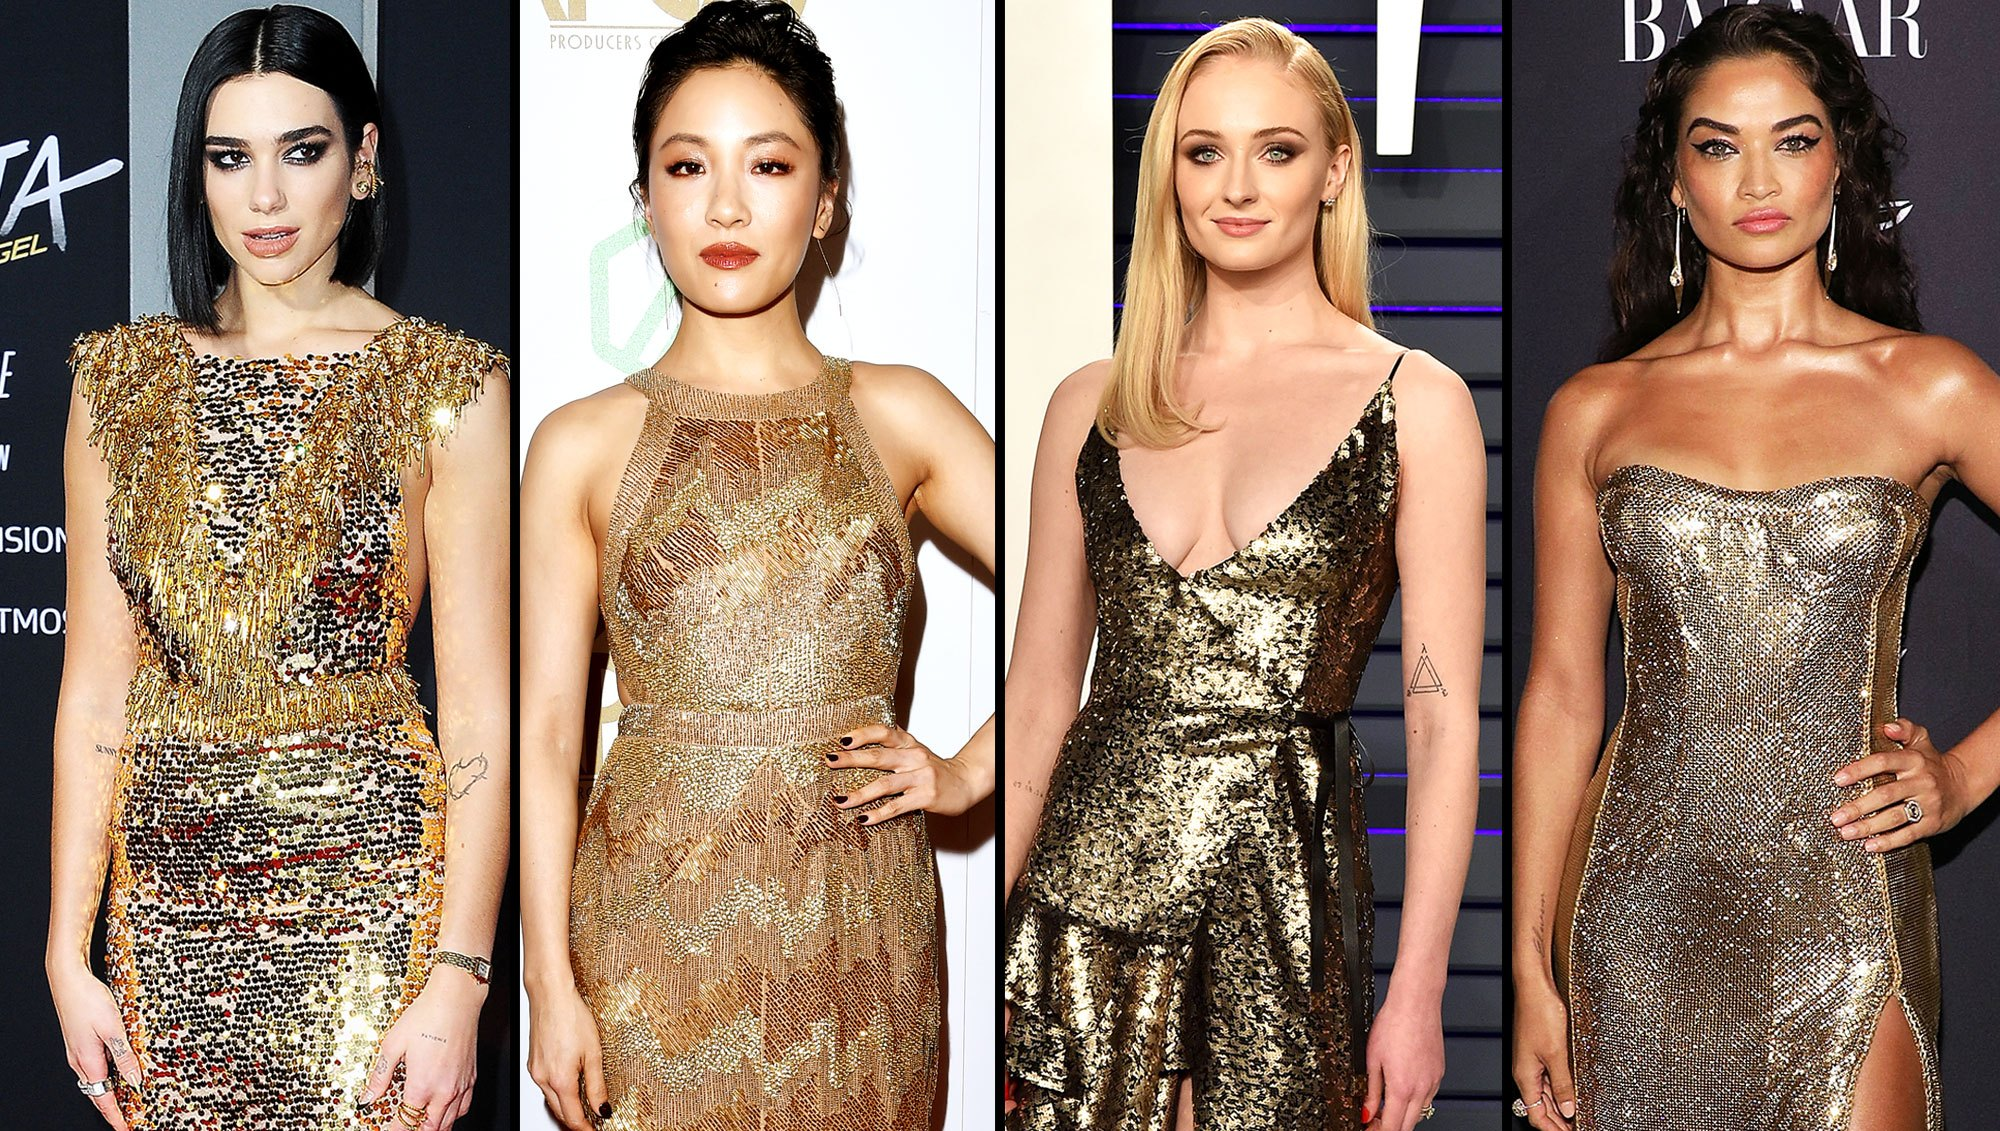 stylish gold Dua Lipa, Constance Wu, Sophie Turner, and Shanina Shaik